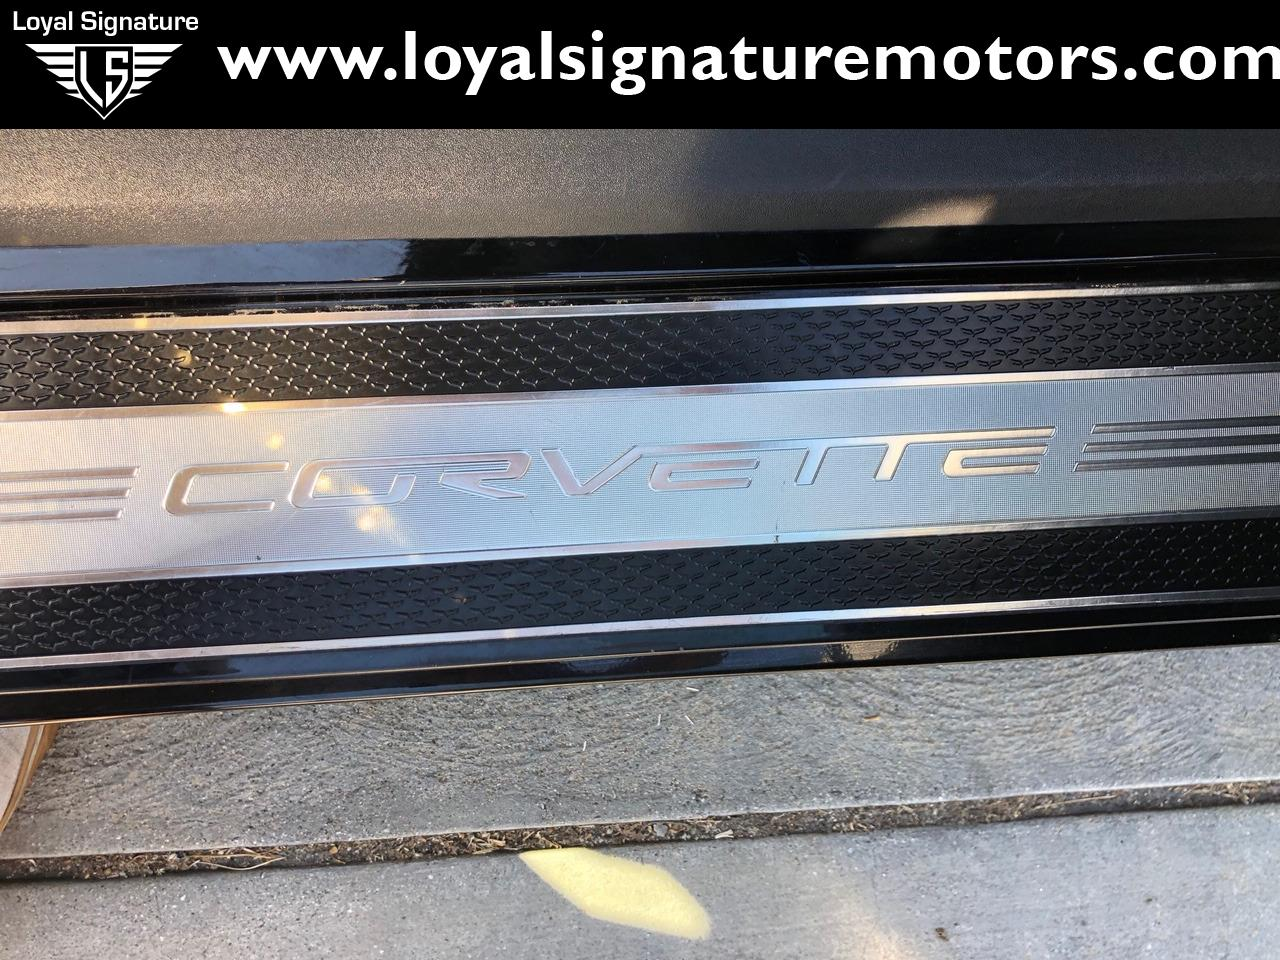 Used-2008-Chevrolet-Corvette